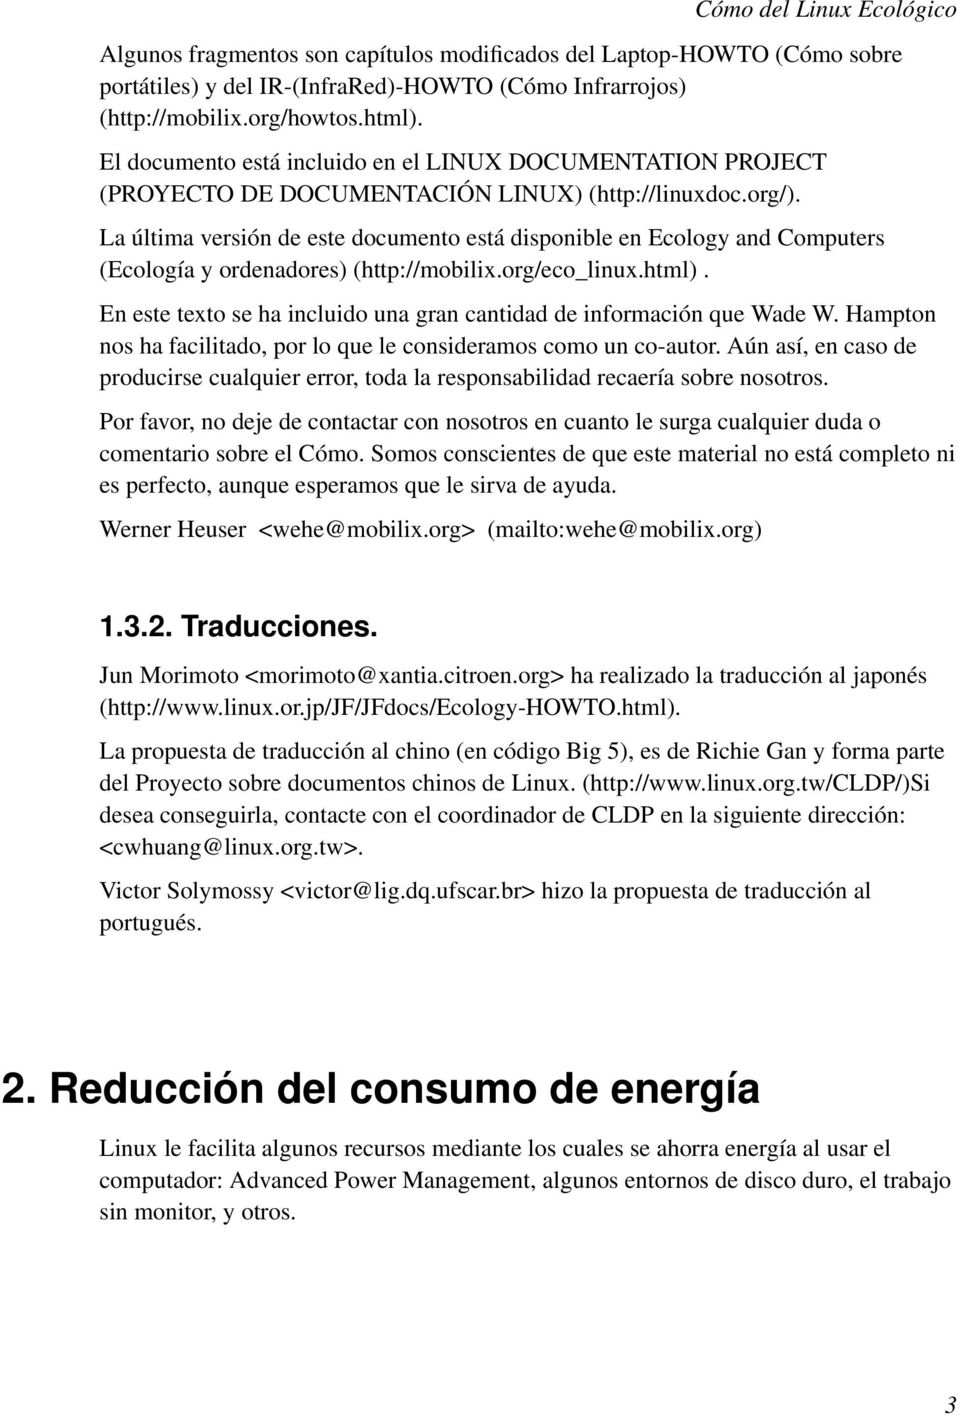 La última versión de este documento está disponible en Ecology and Computers (Ecología y ordenadores) (http://mobilix.org/eco_linux.html).